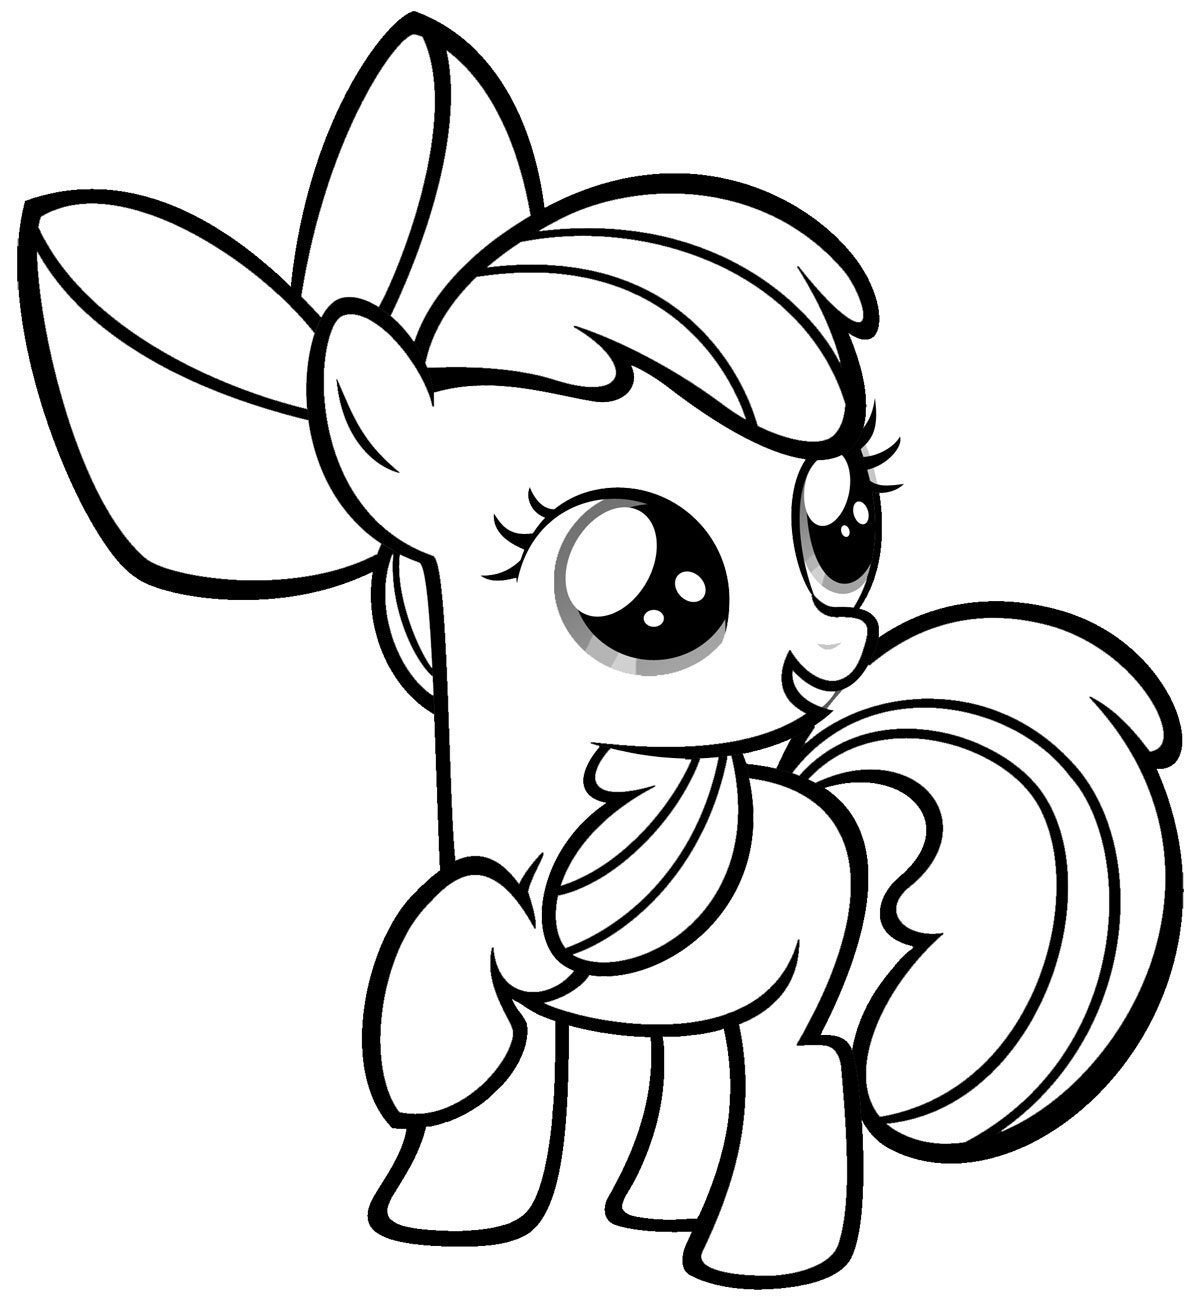 Free Printable My Little Pony Coloring Pages For Kids Coloring Kids Colouring Pages